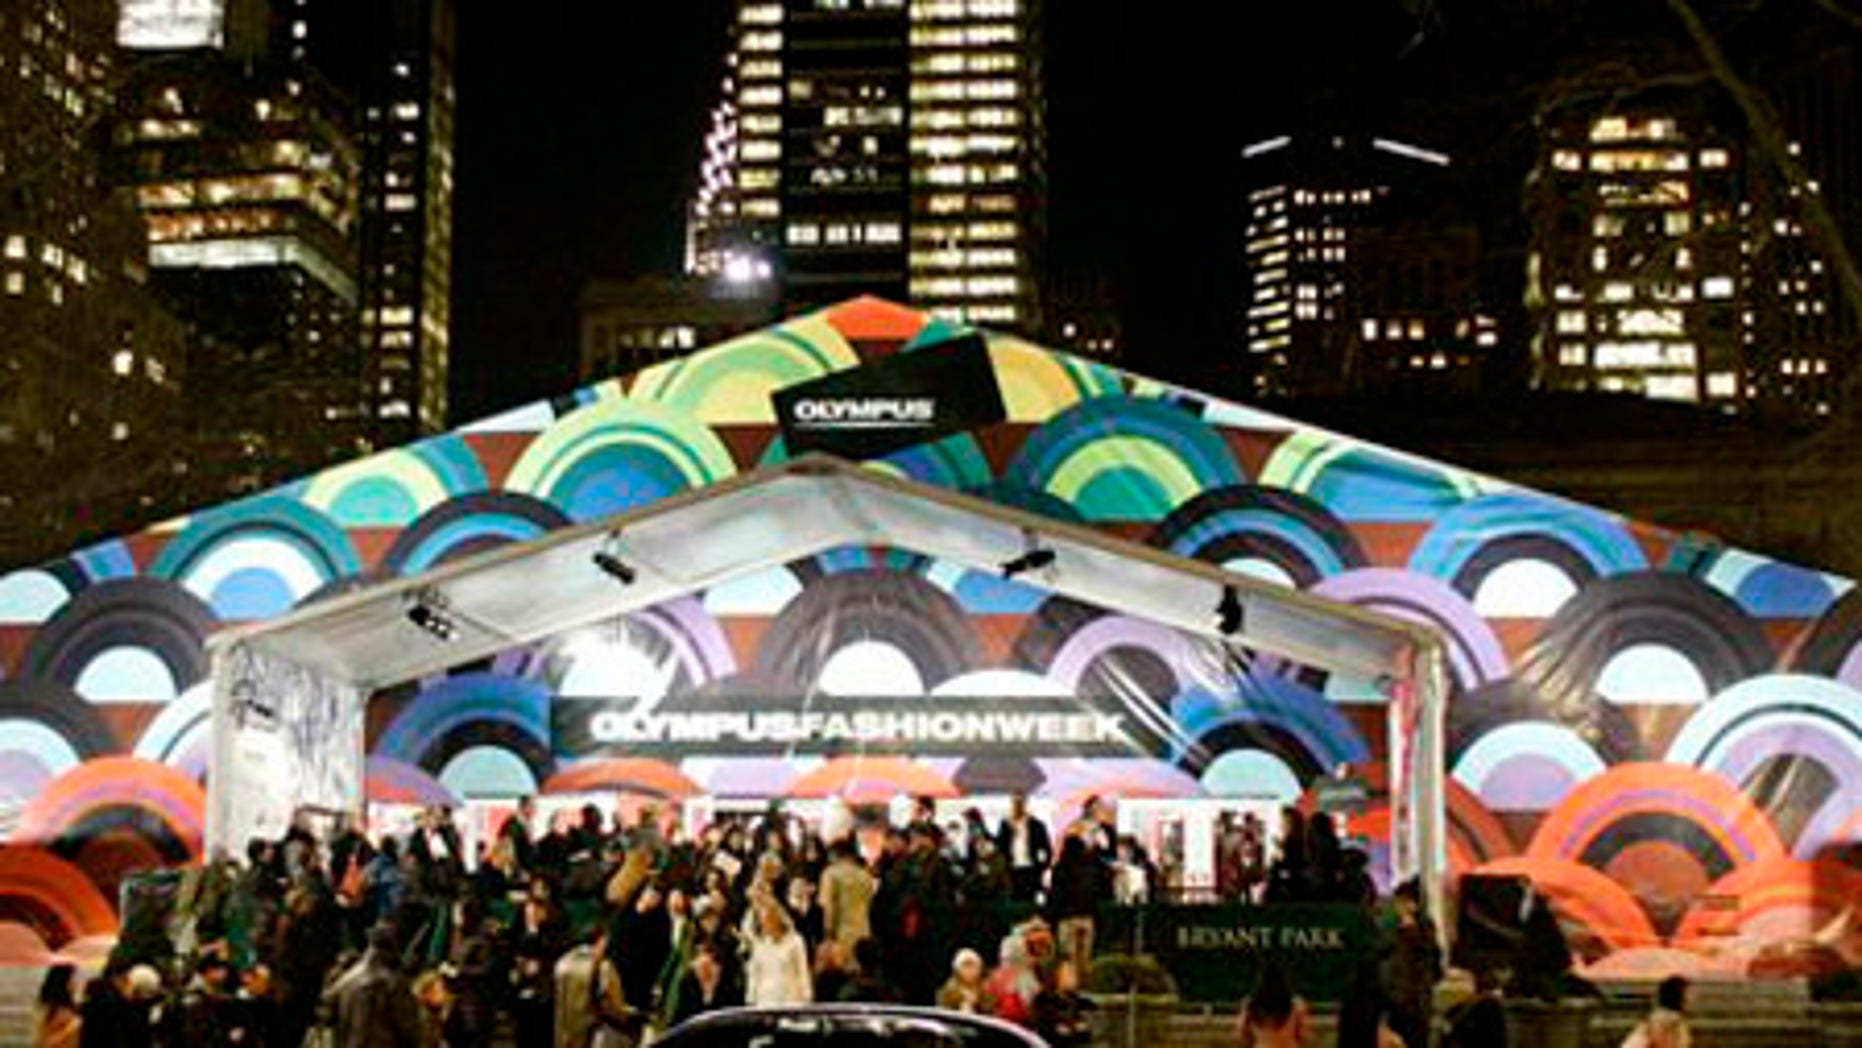 Feb. 6, 2006: This photo shows the tents in Bryant Park during Fashion Week. In 2010, Fashion Week will move to Lincoln Center.